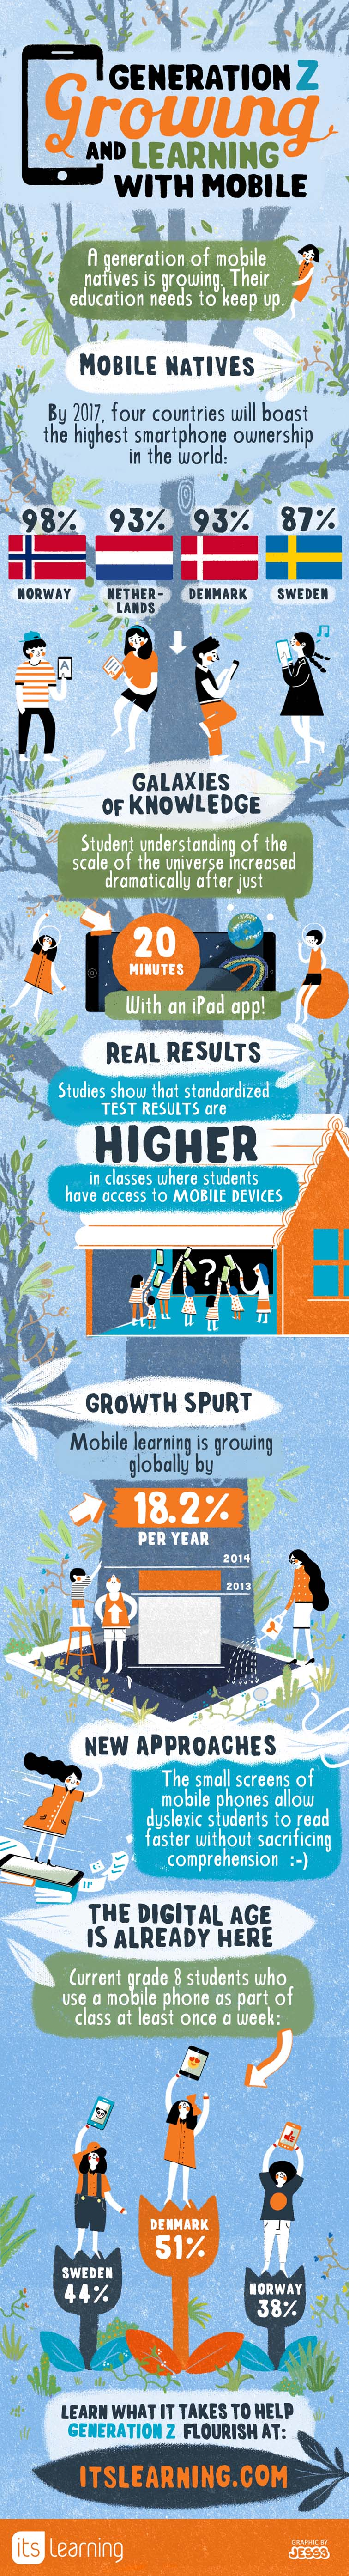 itslearning Mobile infographic 7152